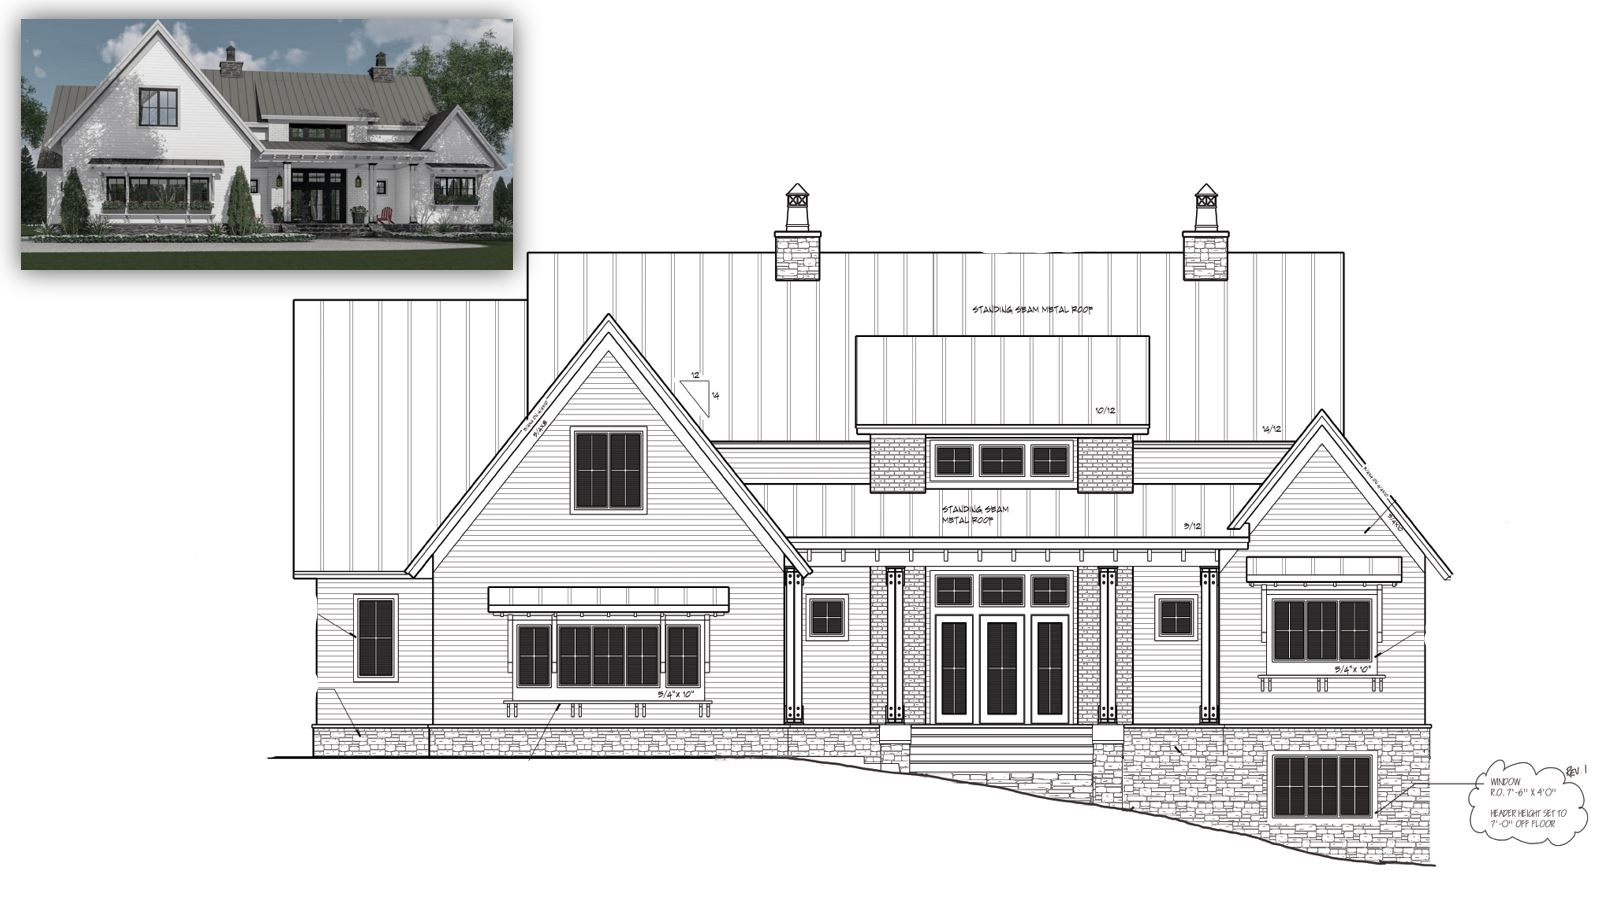 Original plans and rendering by  Royal Oaks Design . Modification to elevation by DOVETAIL